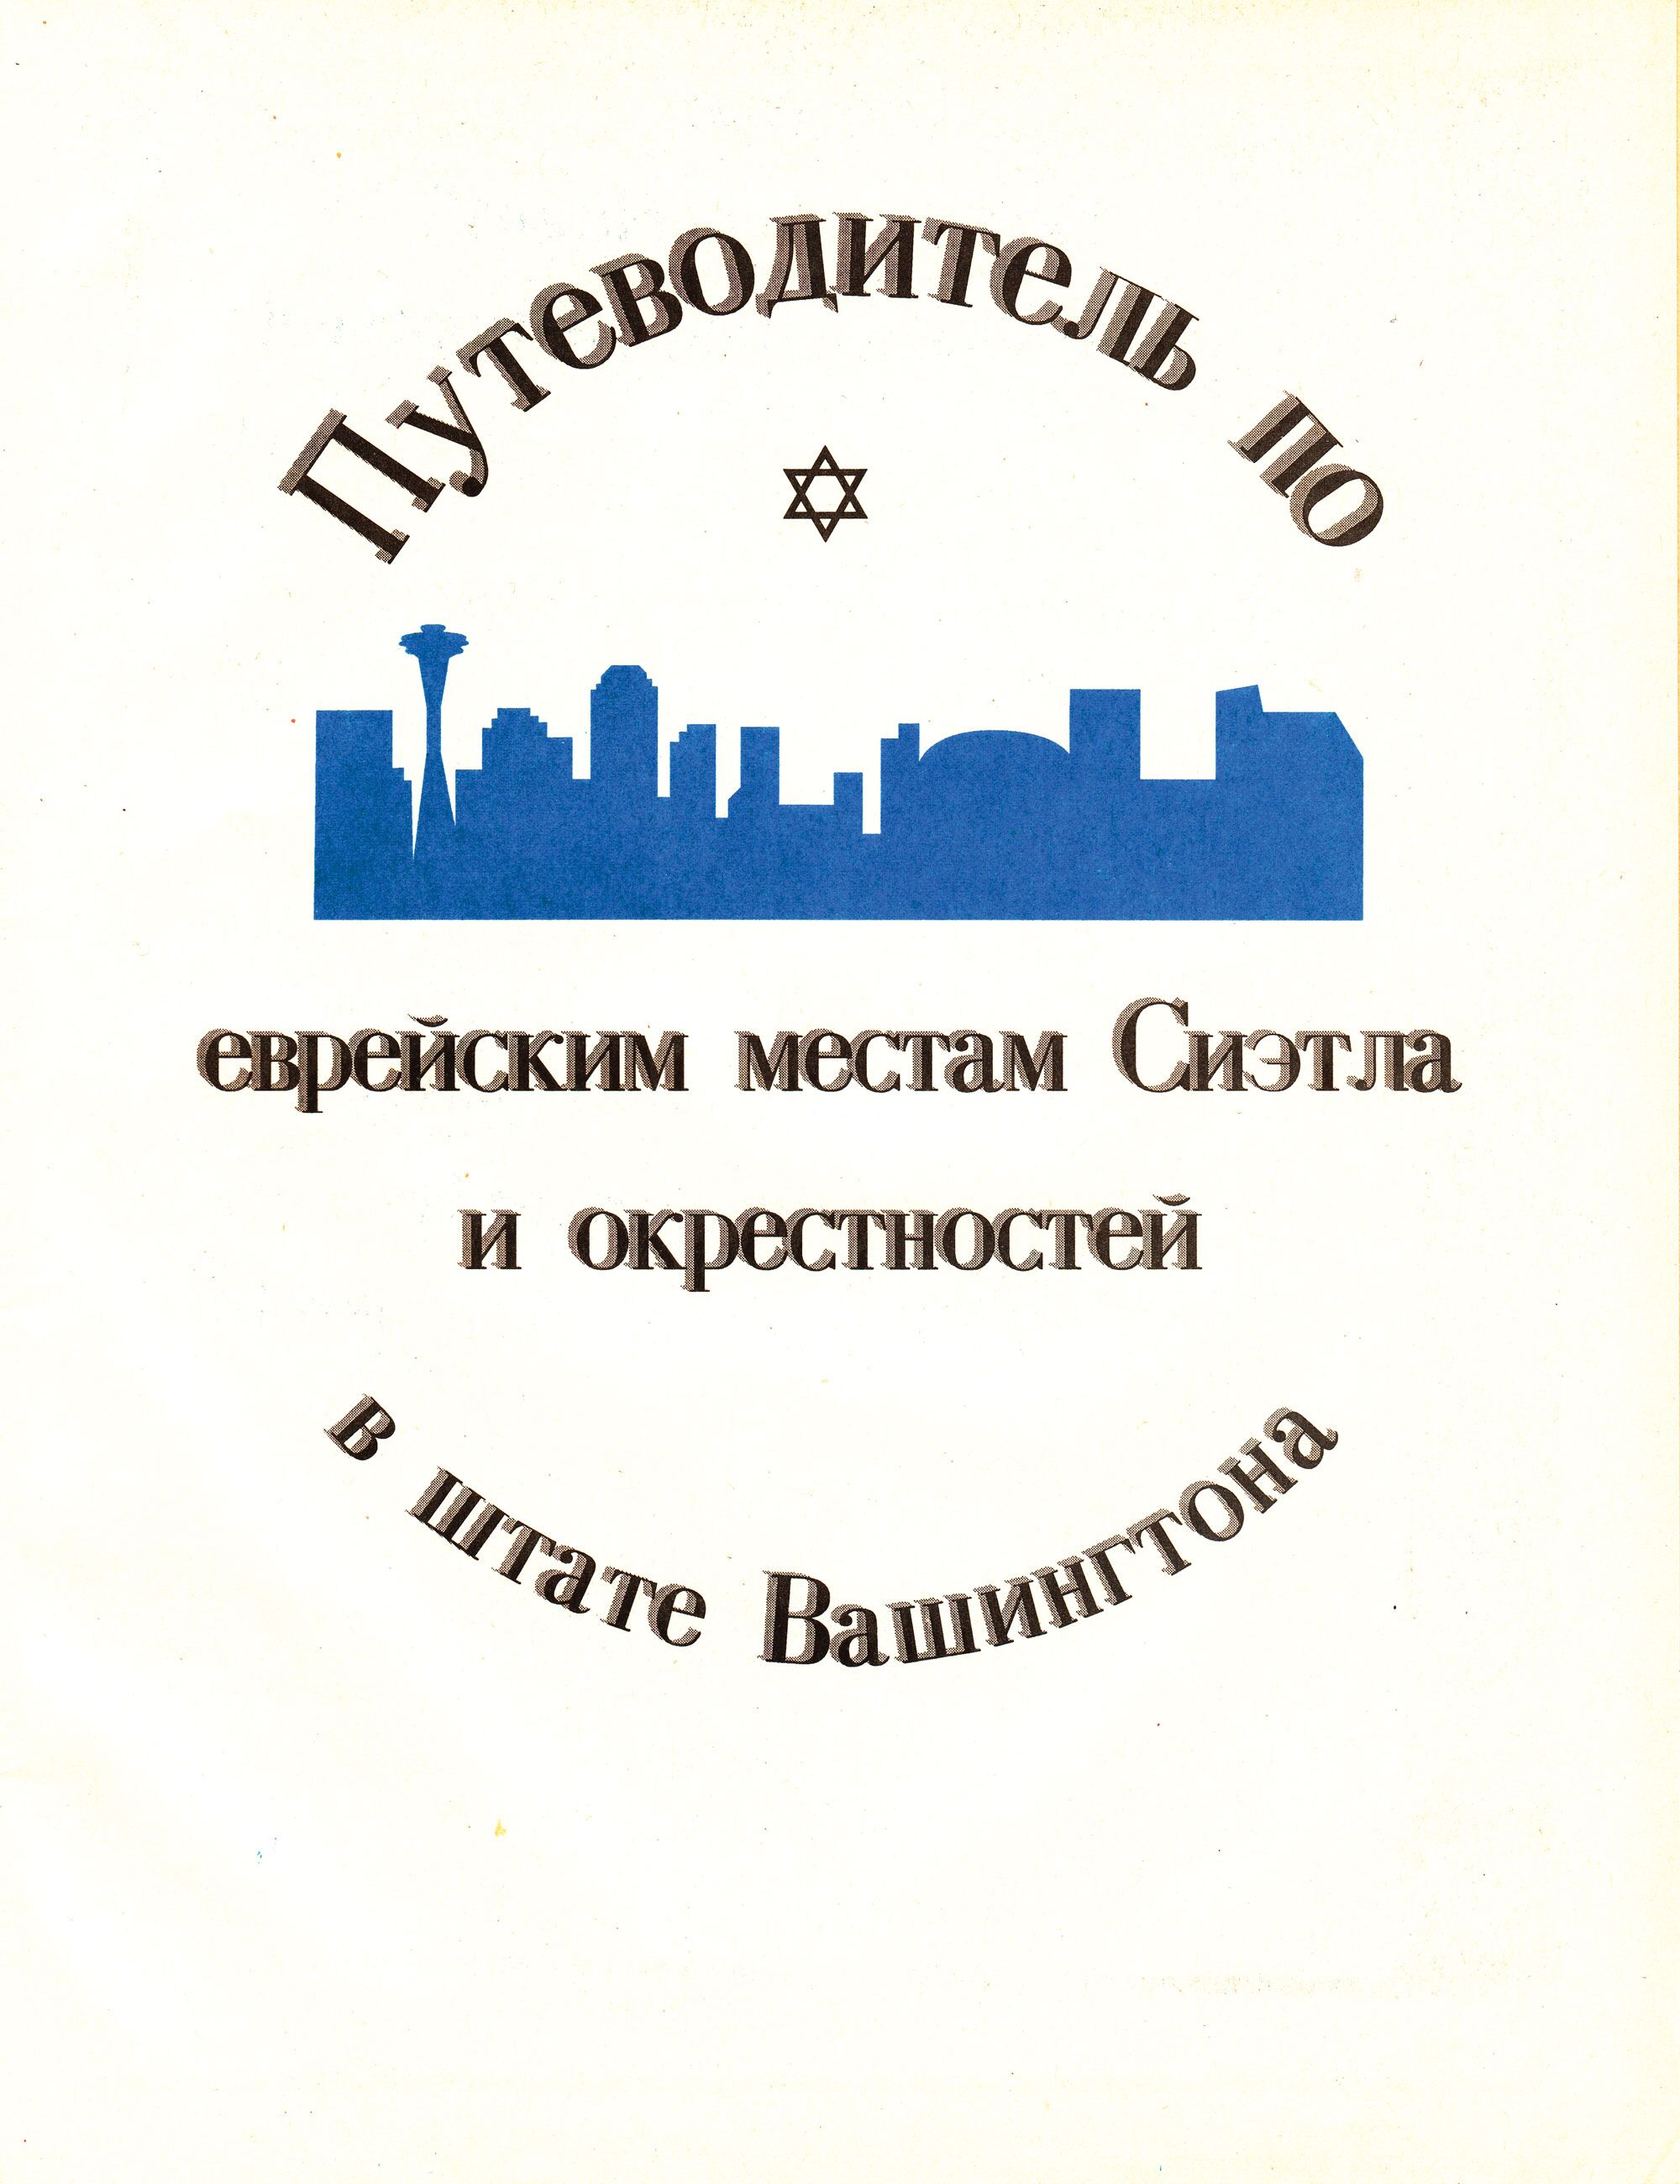 Pamphlet for a Soviet Jewish event